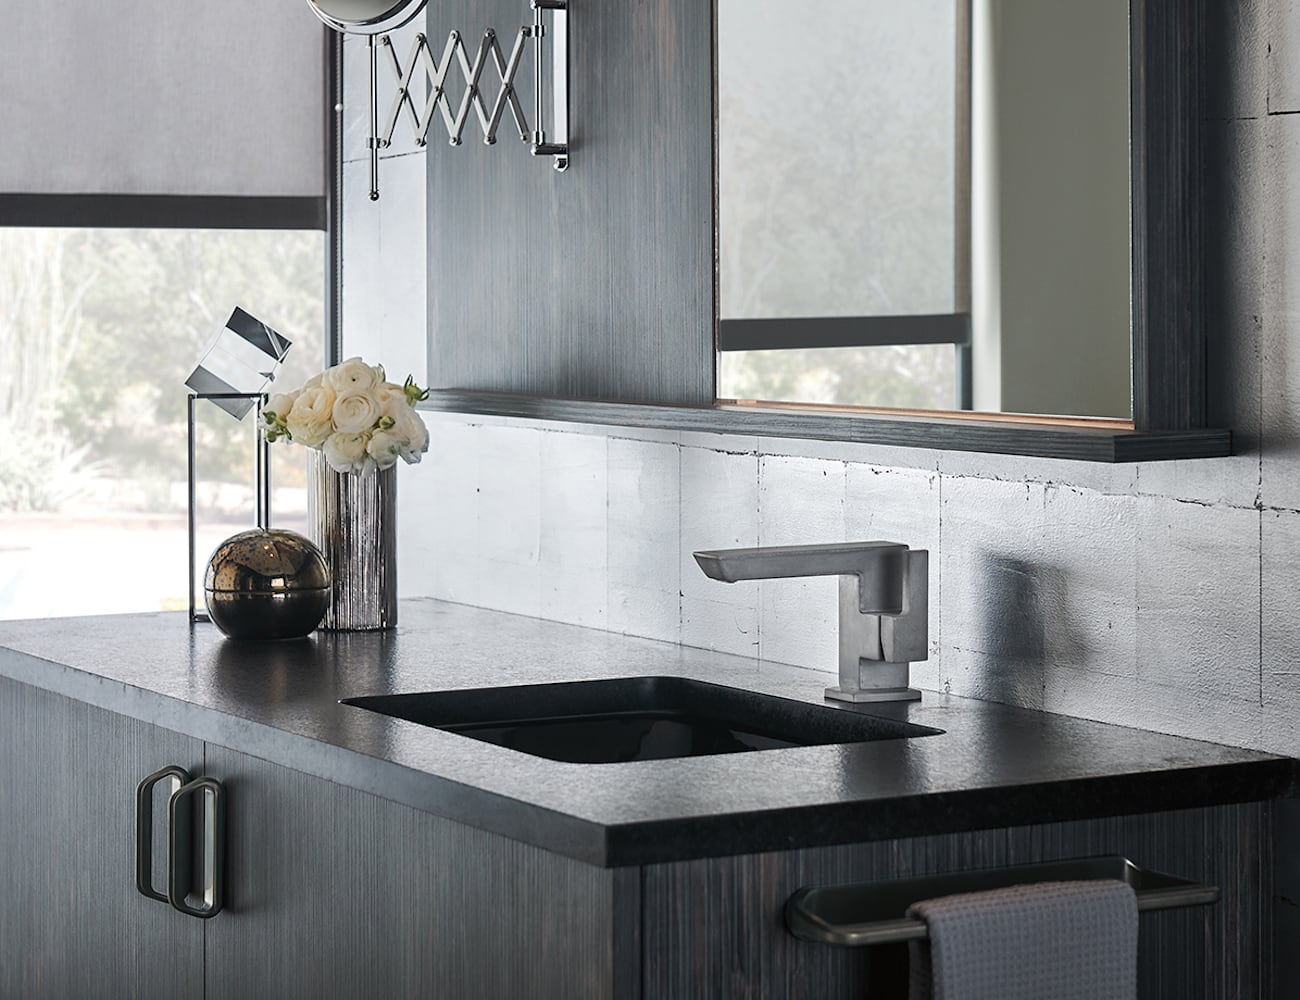 Brizo Vettis Concrete Limited Edition Faucet adds a work of art to your home